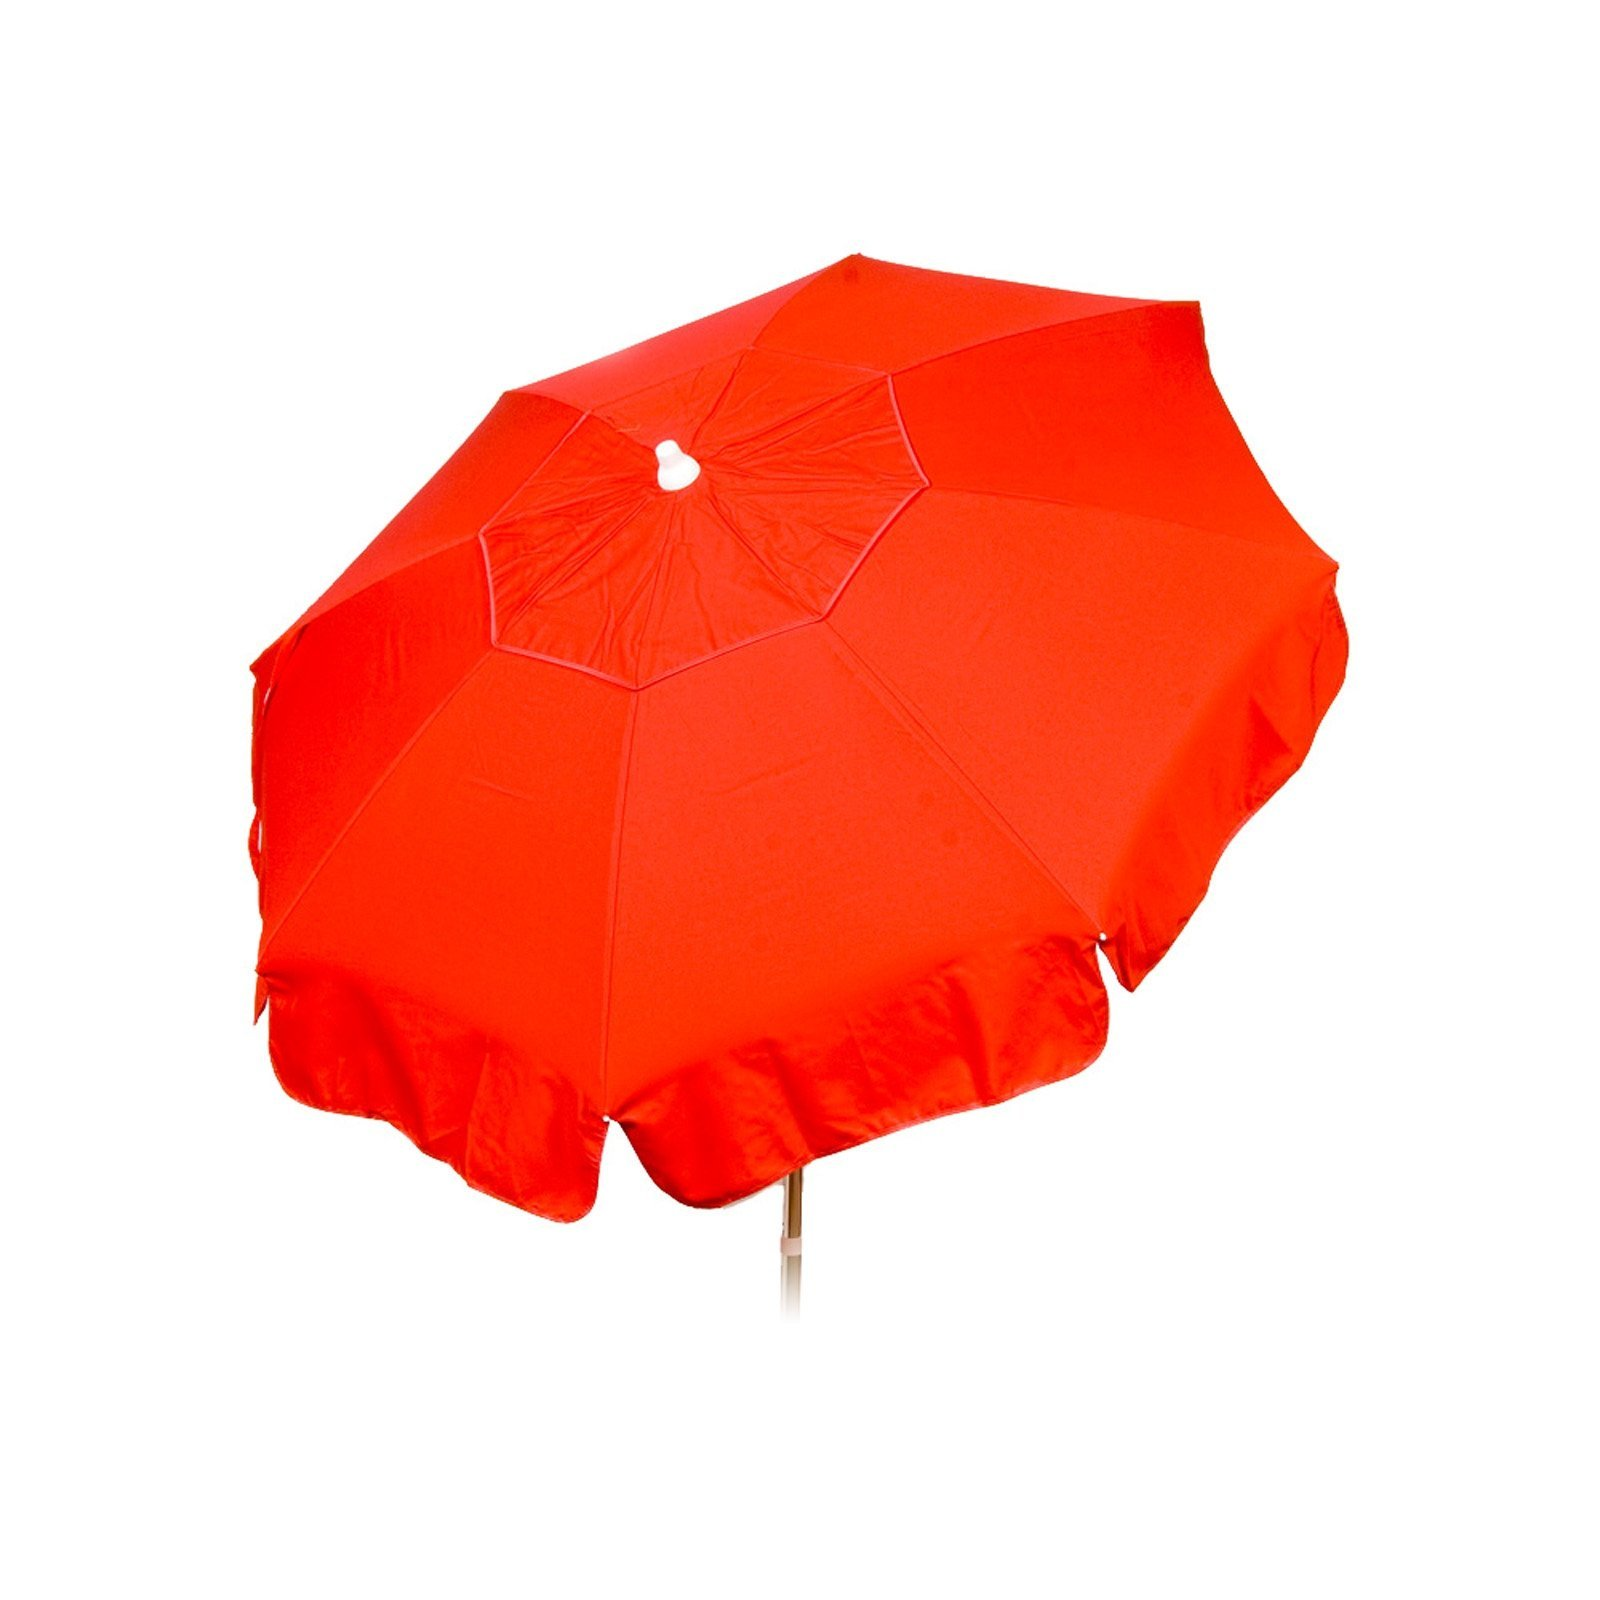 6ft Italian Market Tilt Umbrella Home Patio Canopy Sun Shelter, Red -